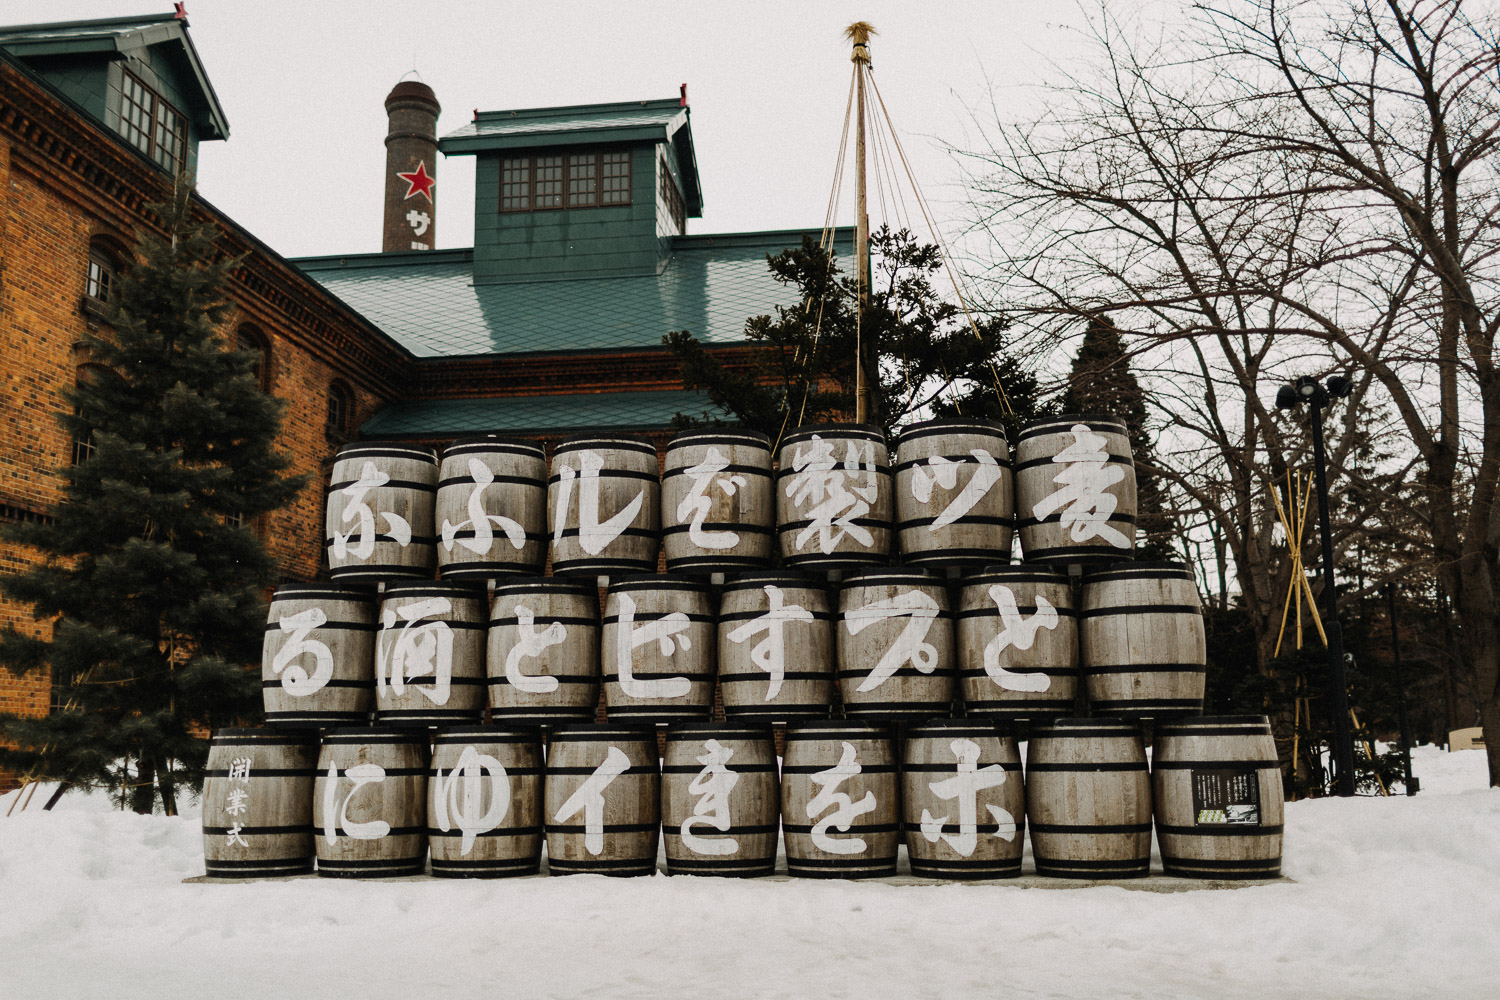 Image of beer buckets